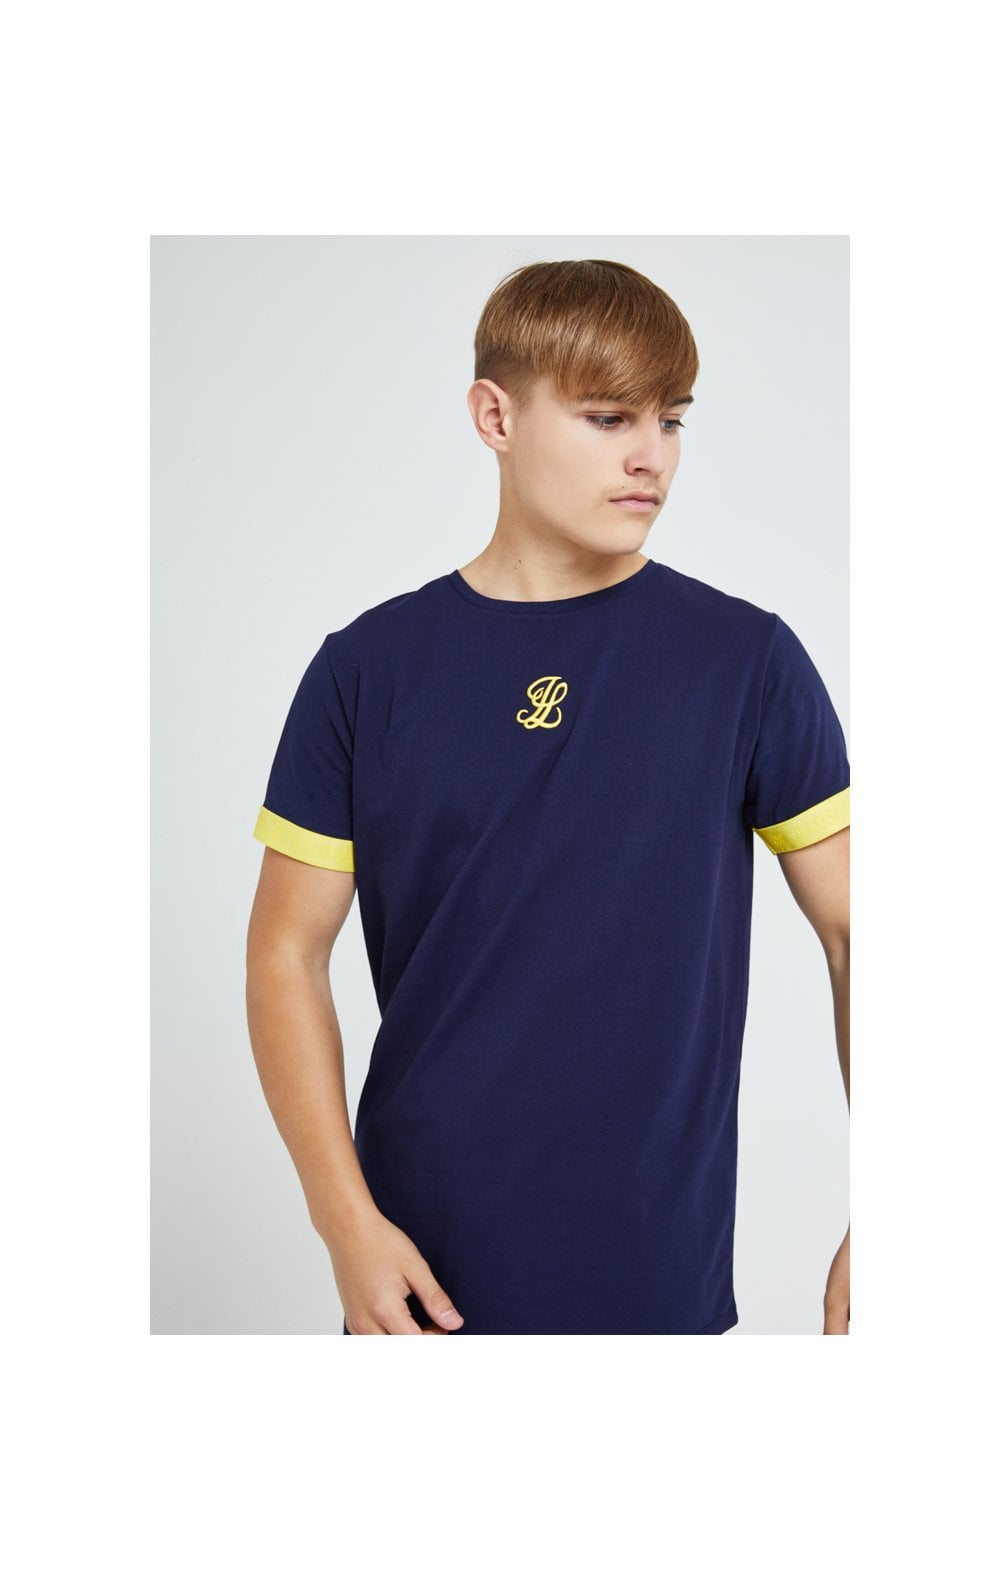 Illusive London Element S/S Tech Tee - Navy Gold & Yellow